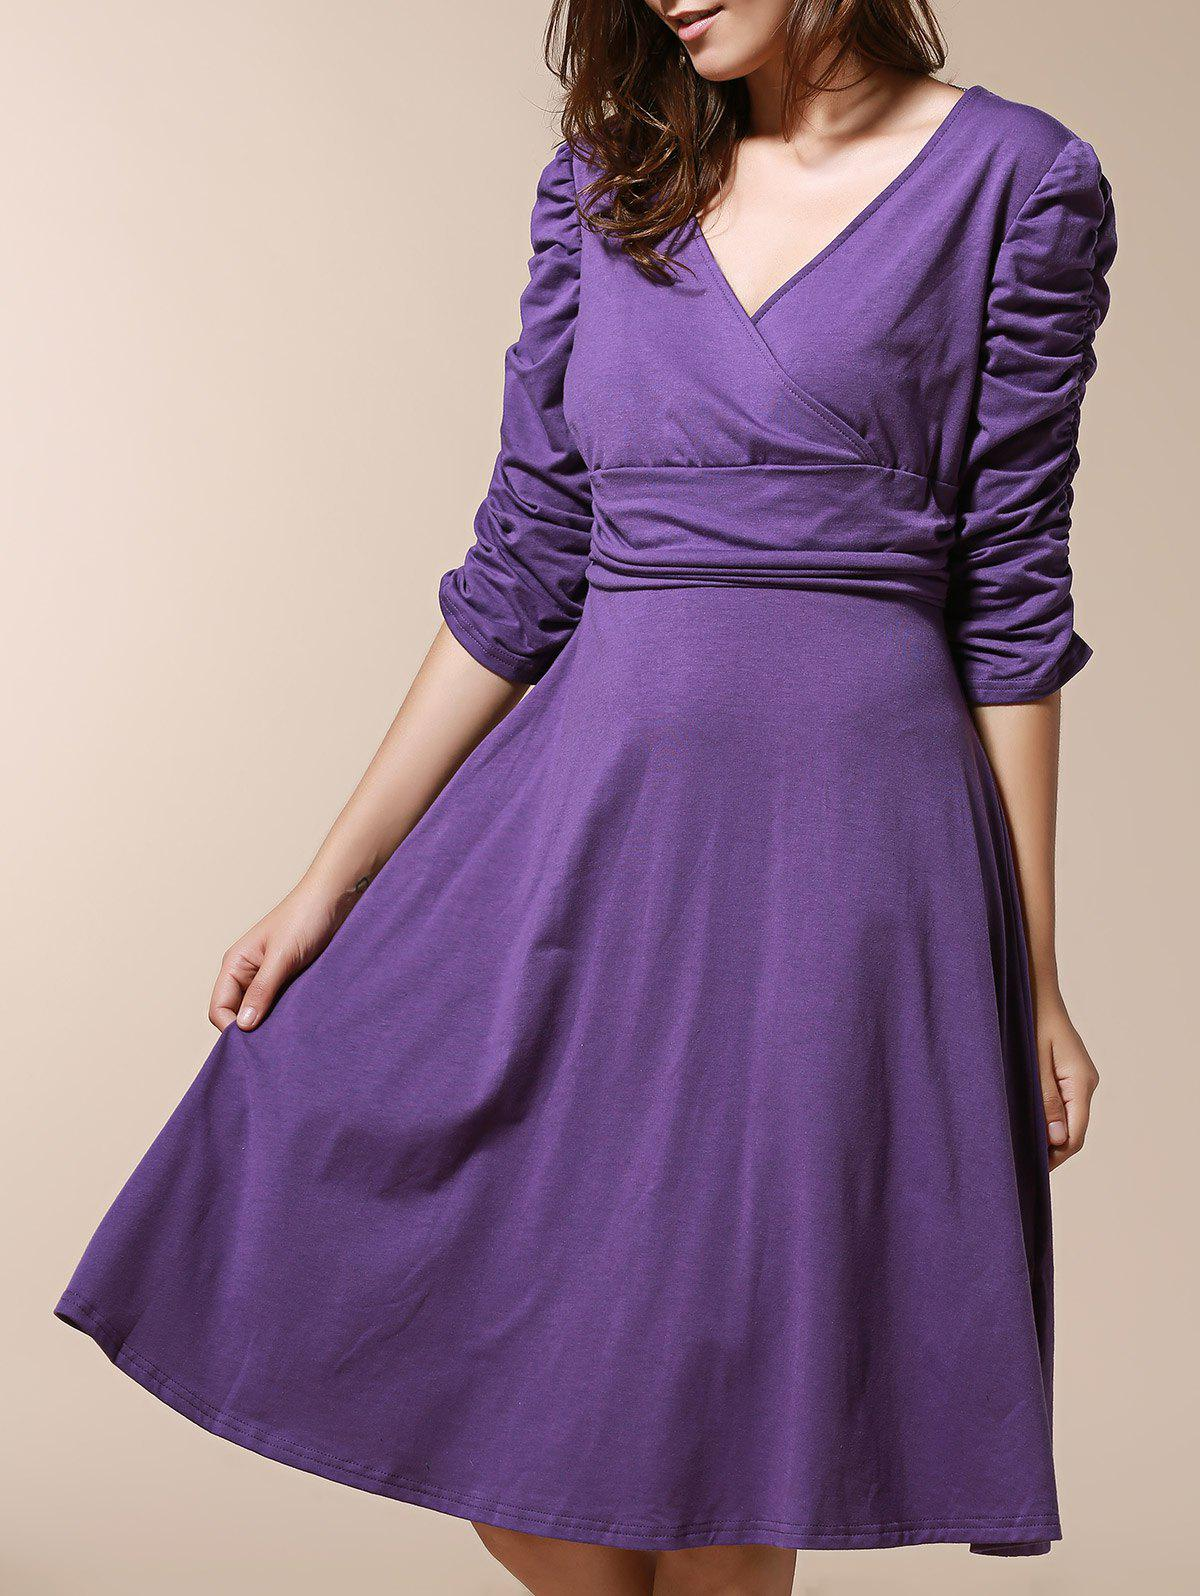 Chic 3/4 Sleeve Plunging Neck Pleated Pure Color Slimming Womens DressWomen<br><br><br>Size: M<br>Color: PURPLE